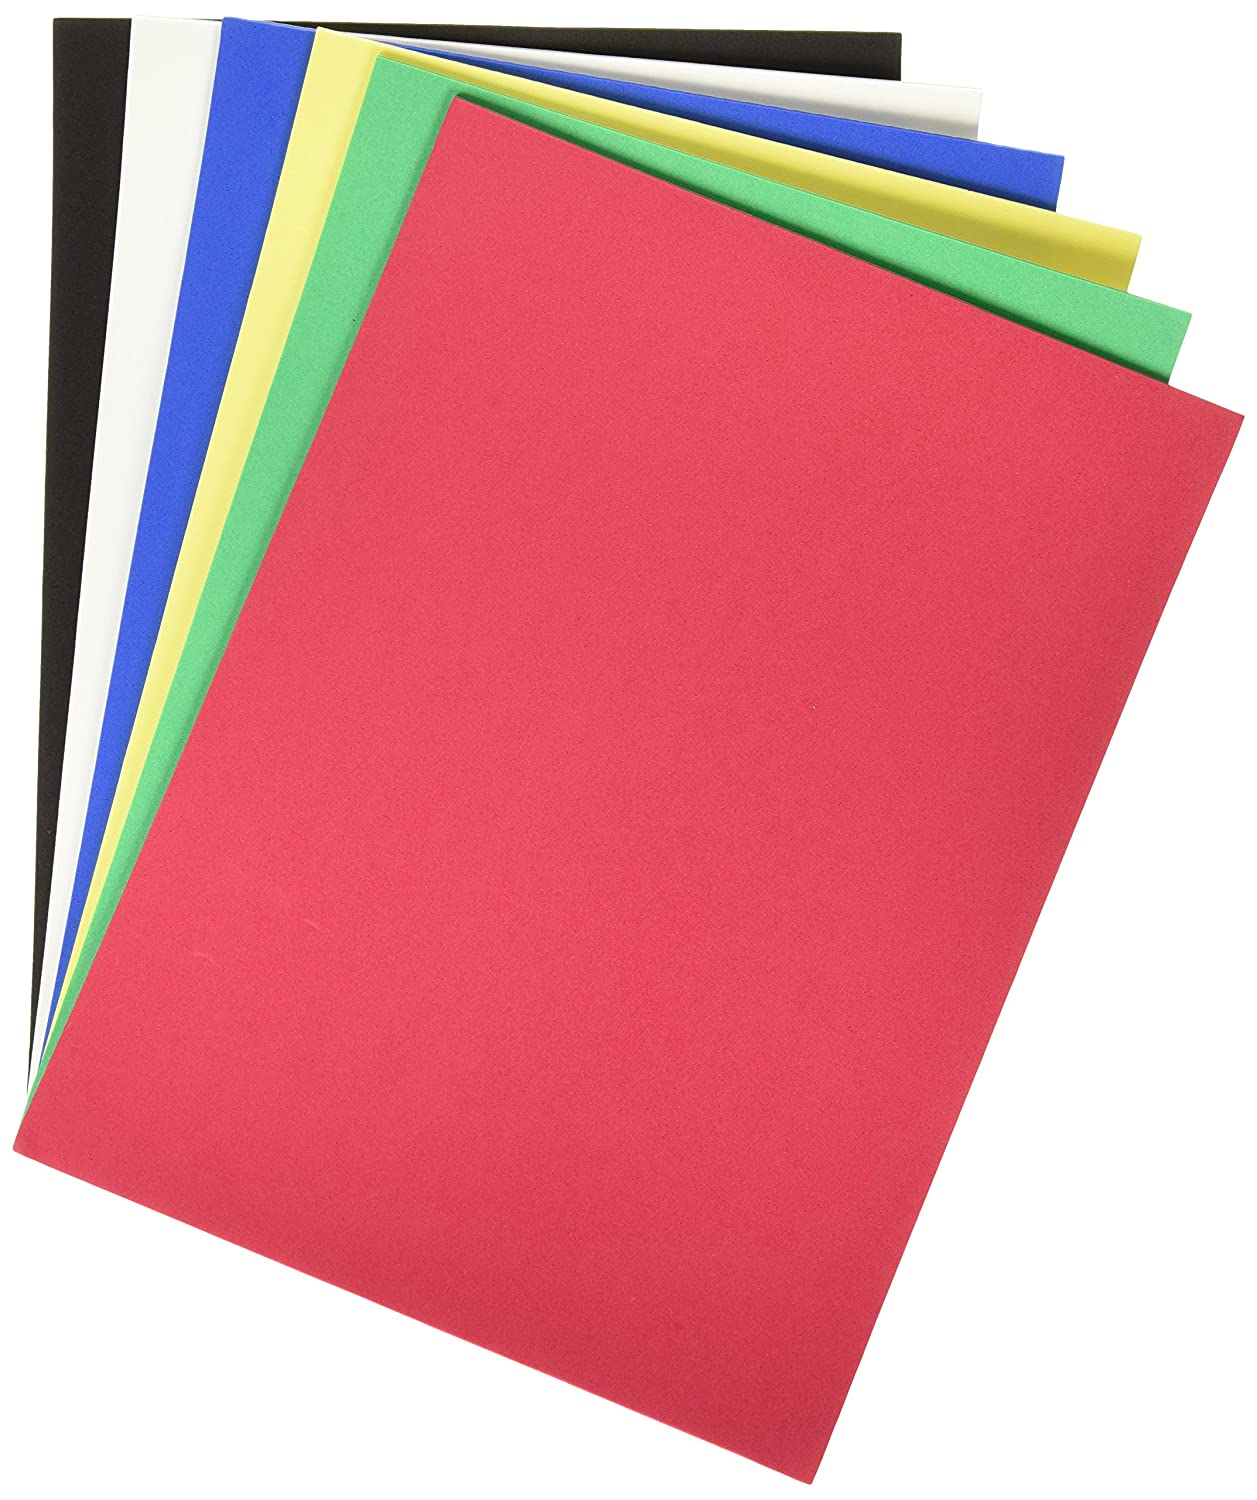 IMISNO DIY Foam Sheets Paper Pack of 24pcs 24 Colors,9.8x9.8,thickness:0.039 //1mm